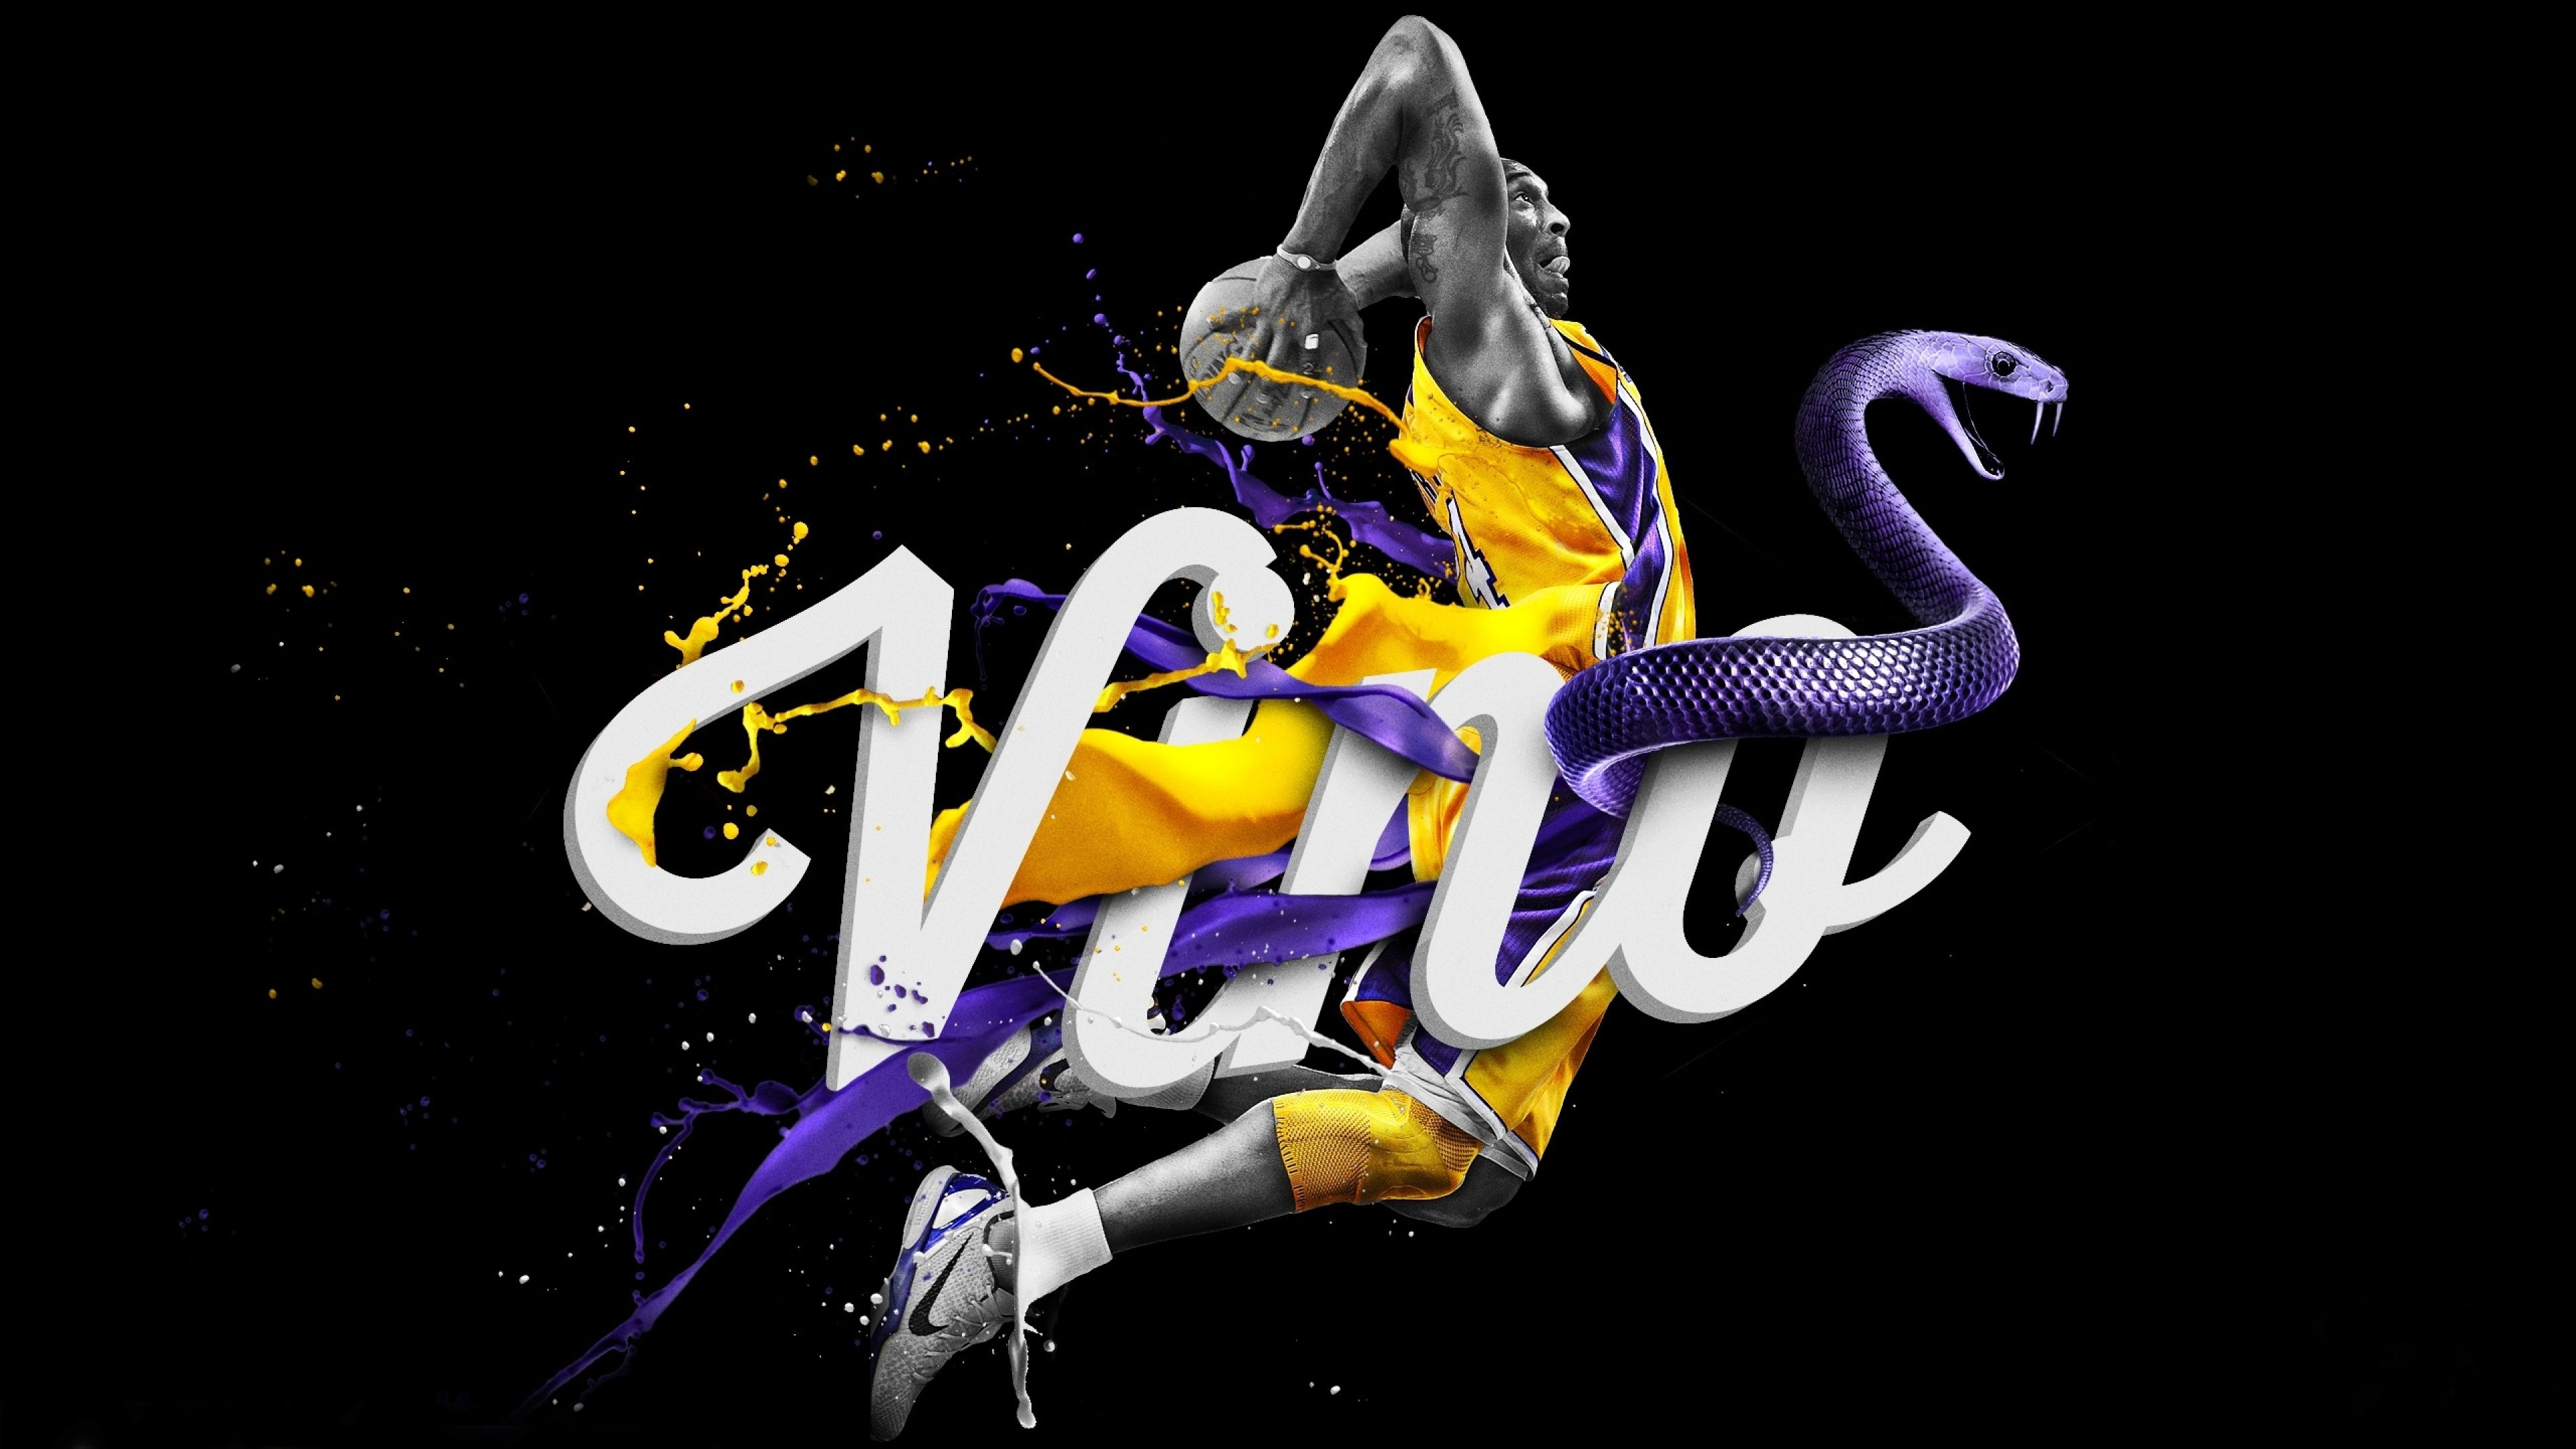 Kobe Bryant Logo Wallpapers High Quality Resolution